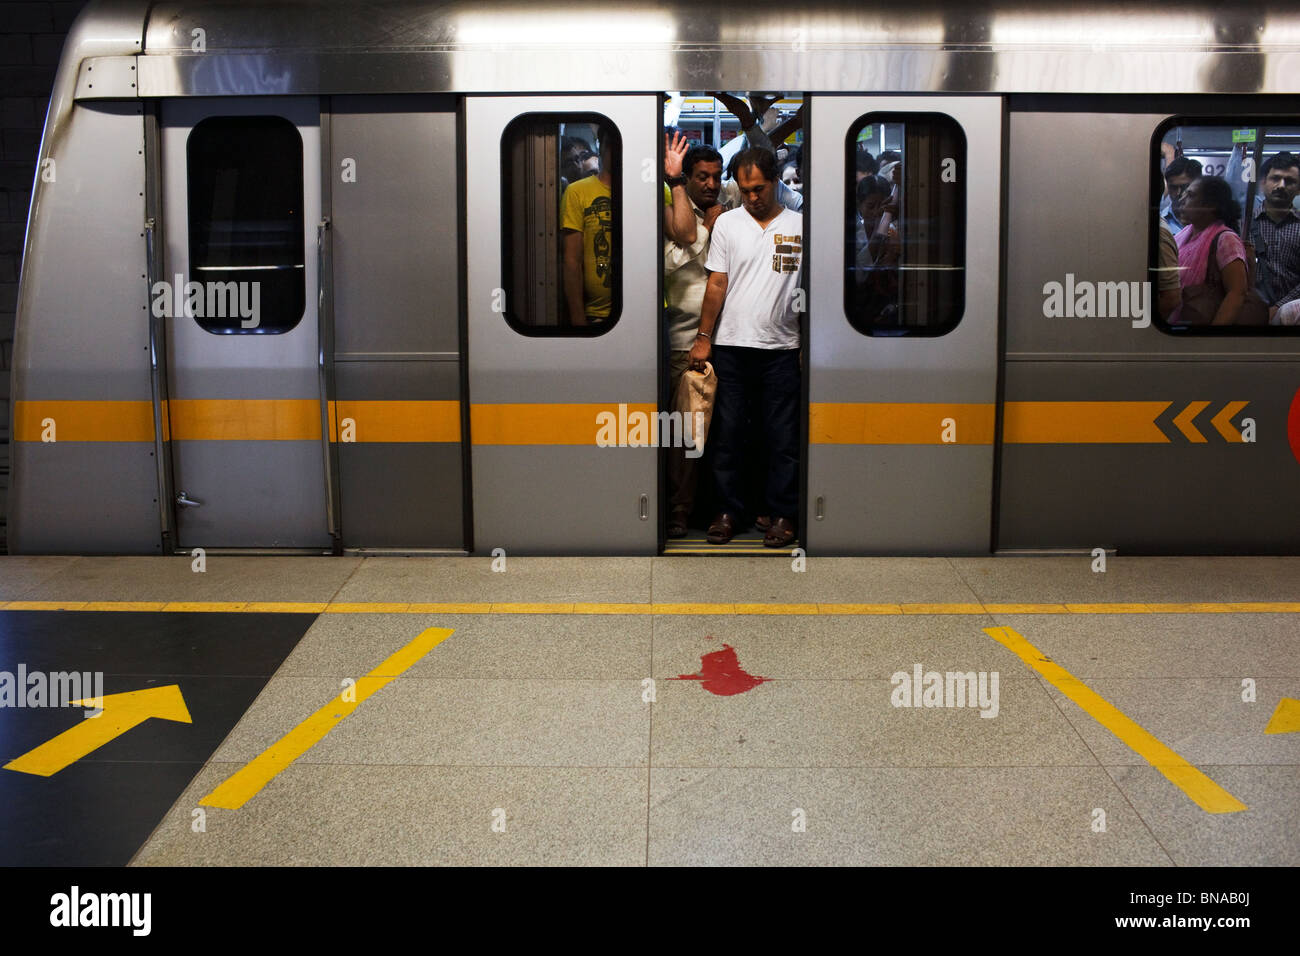 New Delhi Metro station in Delhi, India. - Stock Image